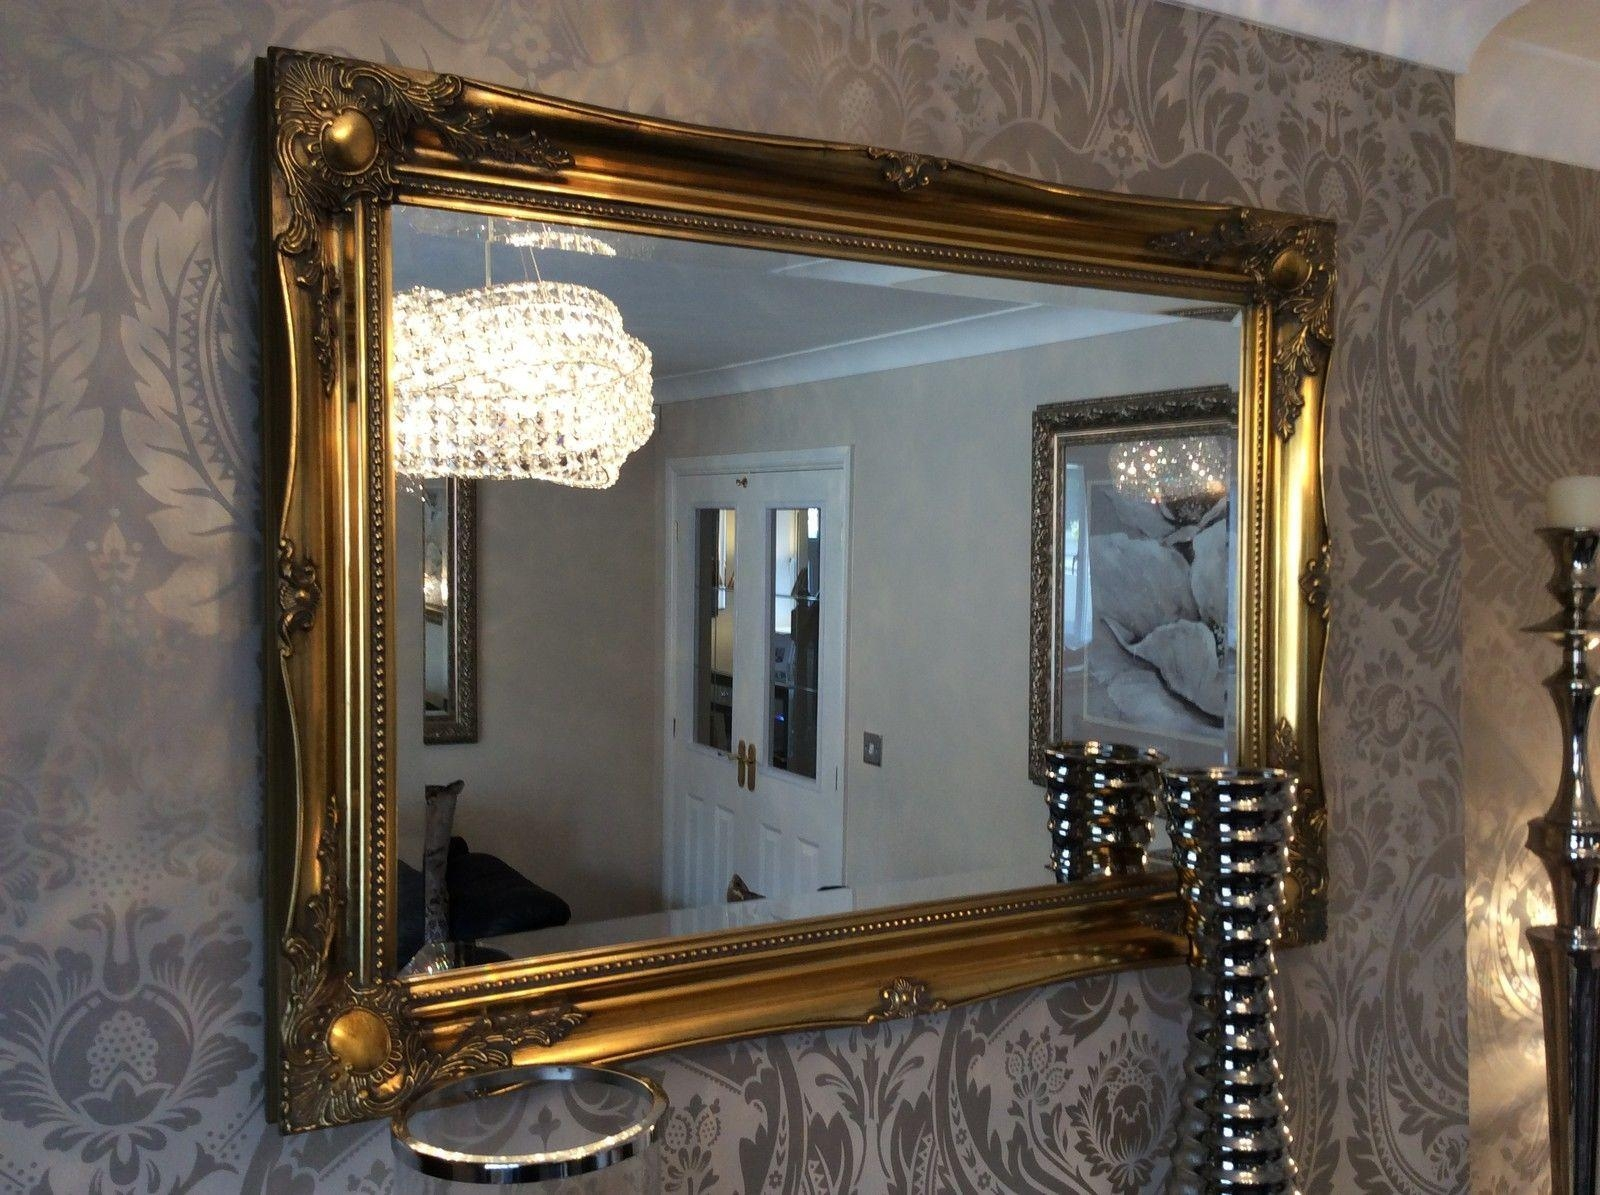 New Antique Gold Shabby Chic Framed Ornate Overmantle Mirror Inside Vintage Overmantle Mirror (Image 13 of 20)